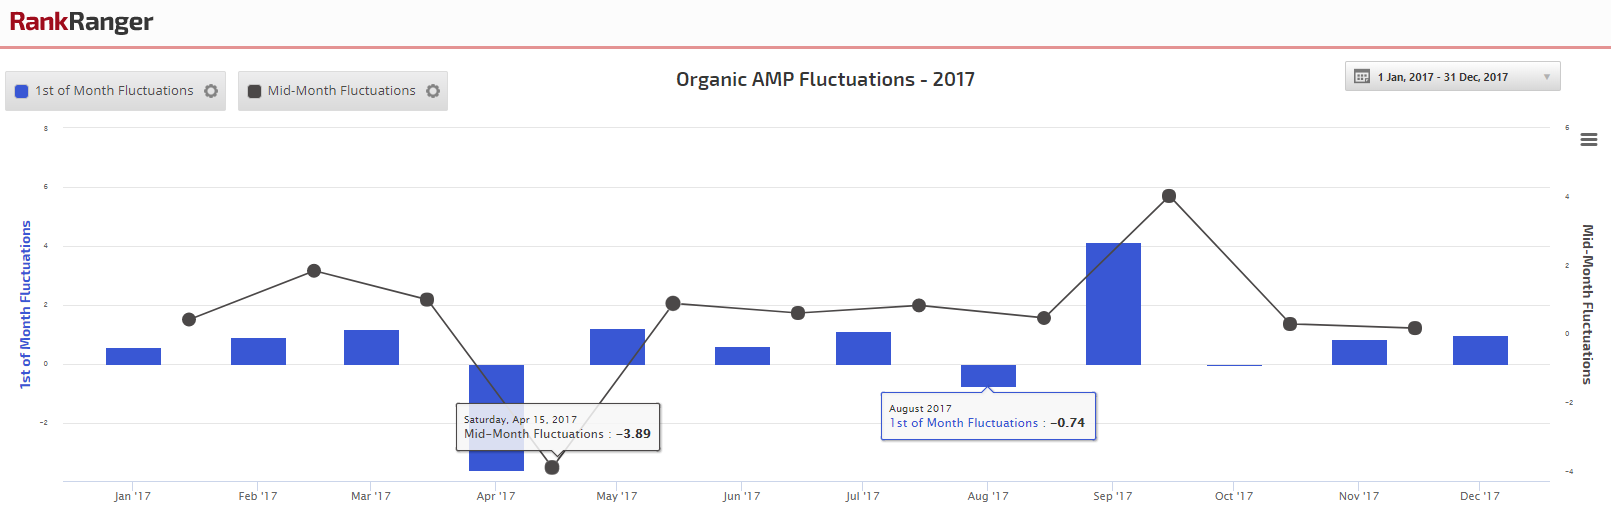 Organic AMP Fluctuations 2017